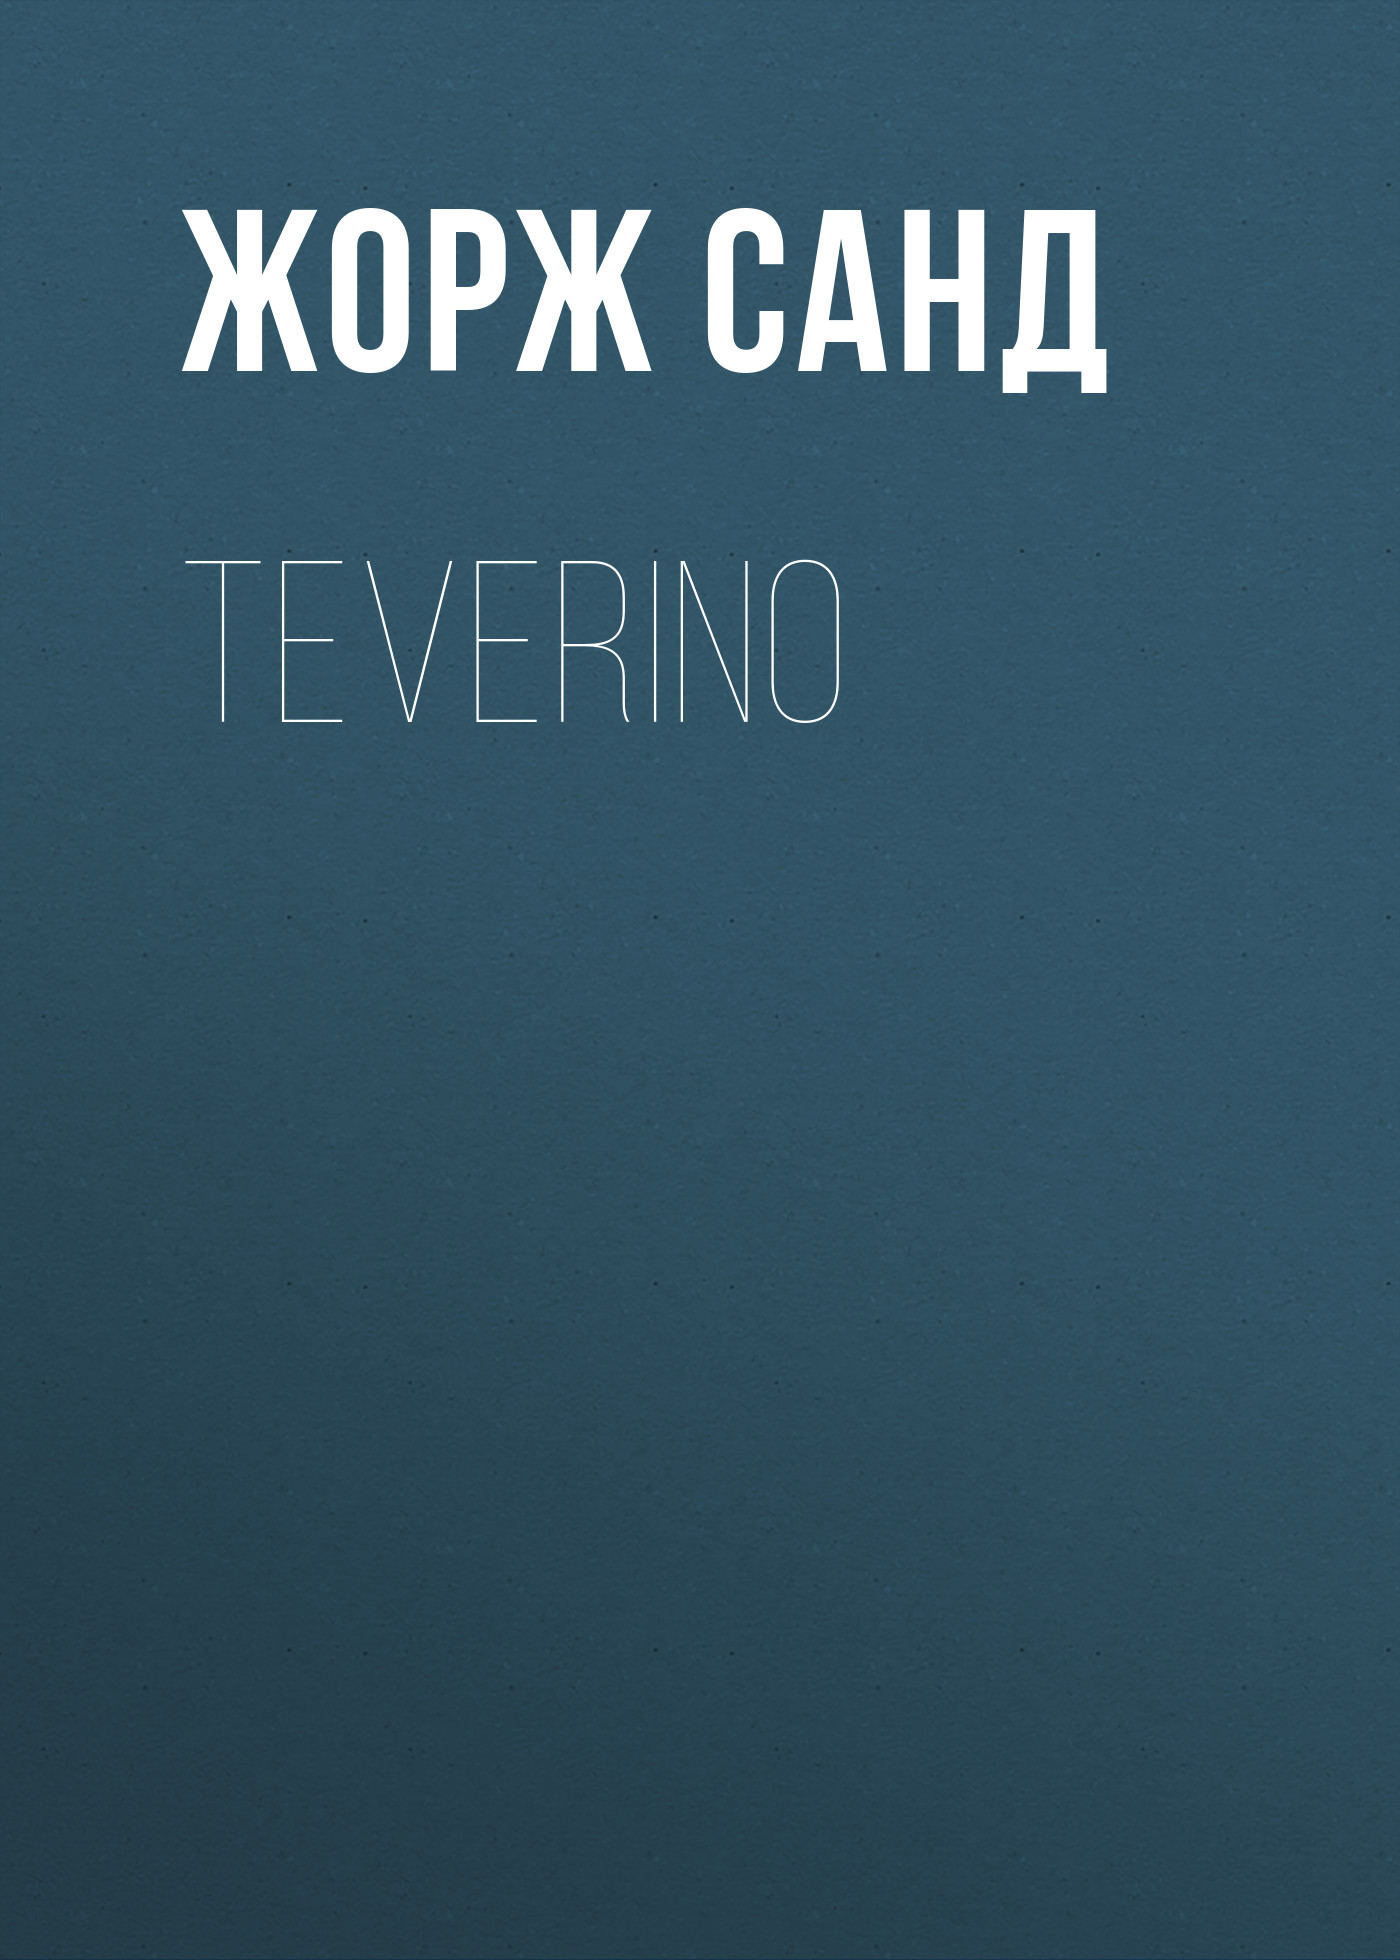 teverino